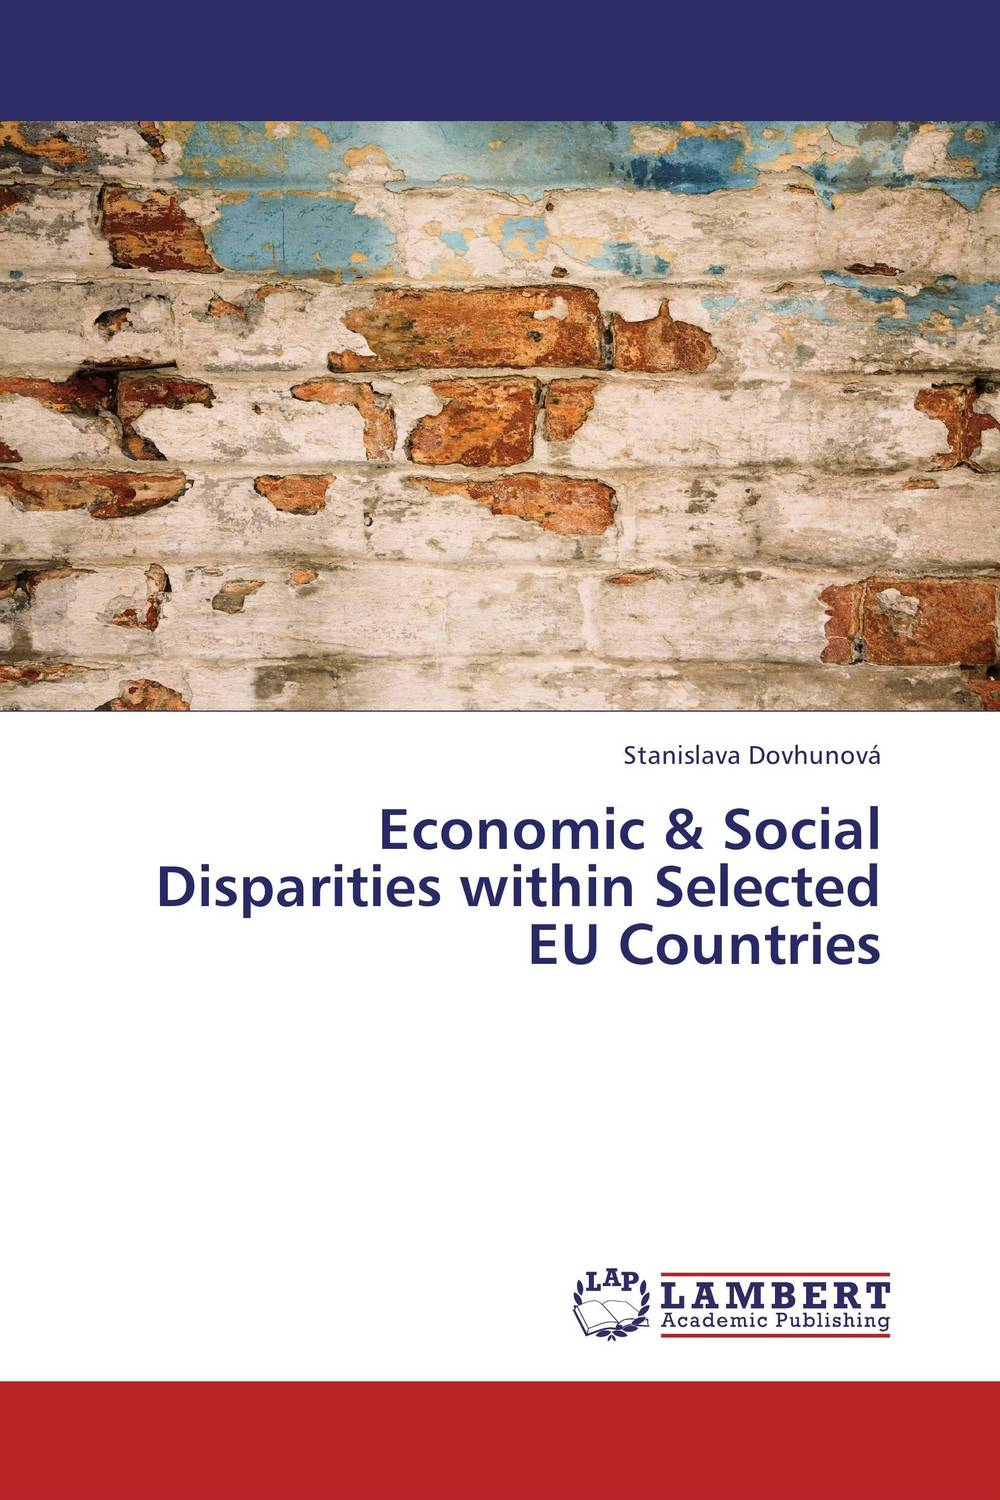 Economic & Social Disparities within Selected EU Countries michael griffis economic indicators for dummies